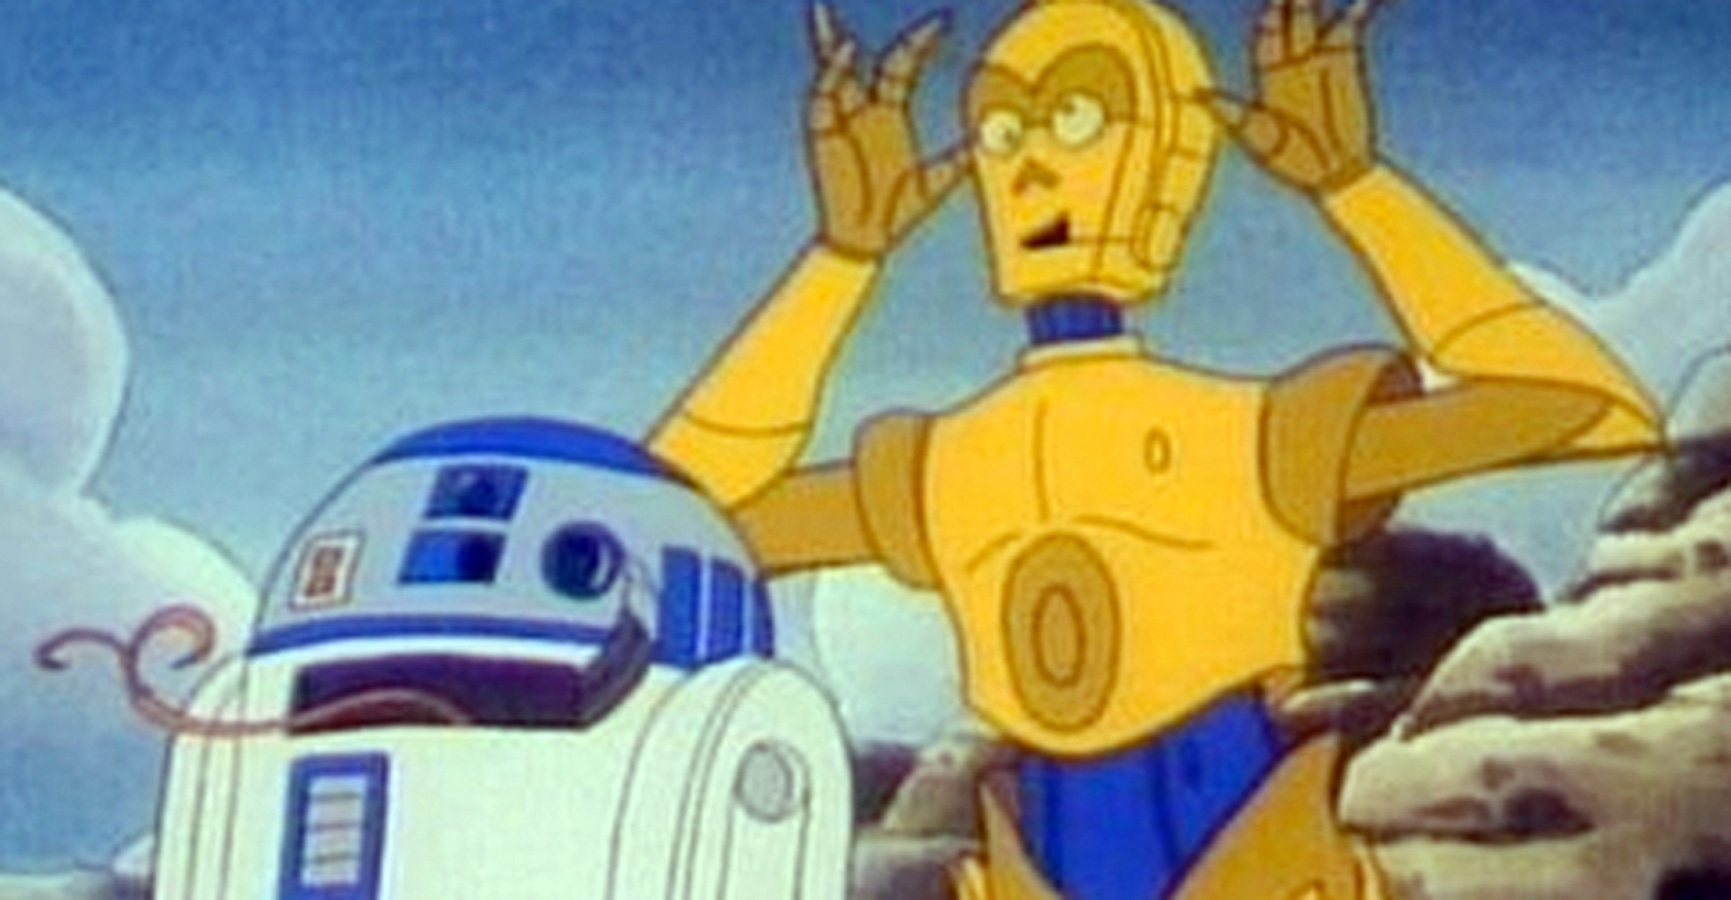 c48cb0aaa84fe The Droids Re-Animated, Part 1 | StarWars.com